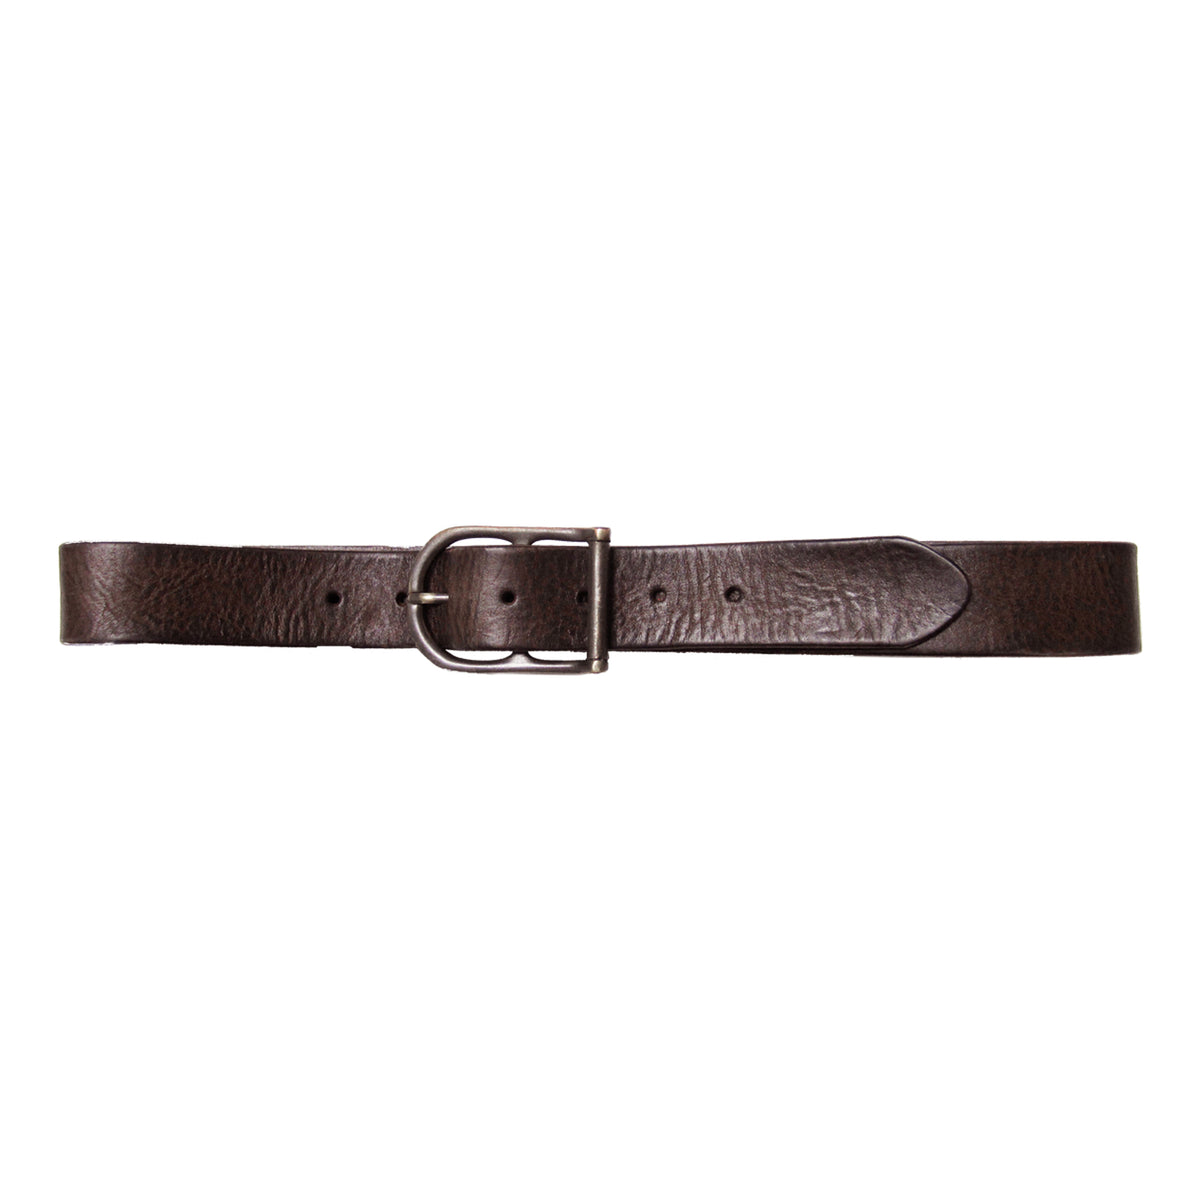 "1 3/8"" Double Center Bar Basic Belt"